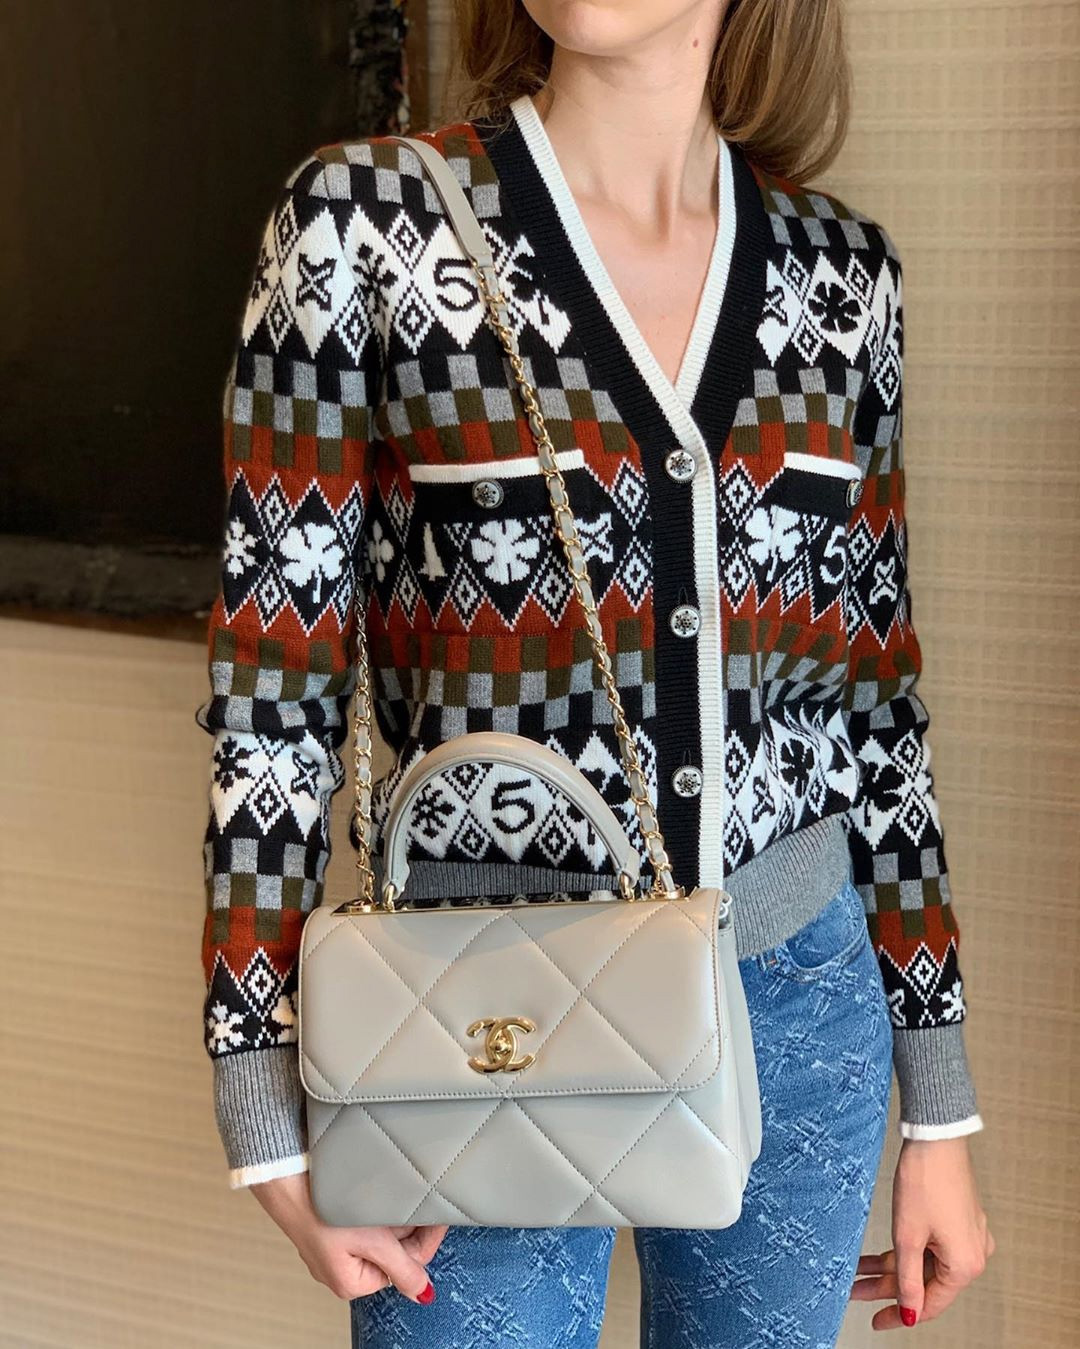 Chanel Trendy CC in Large and Small Quilting